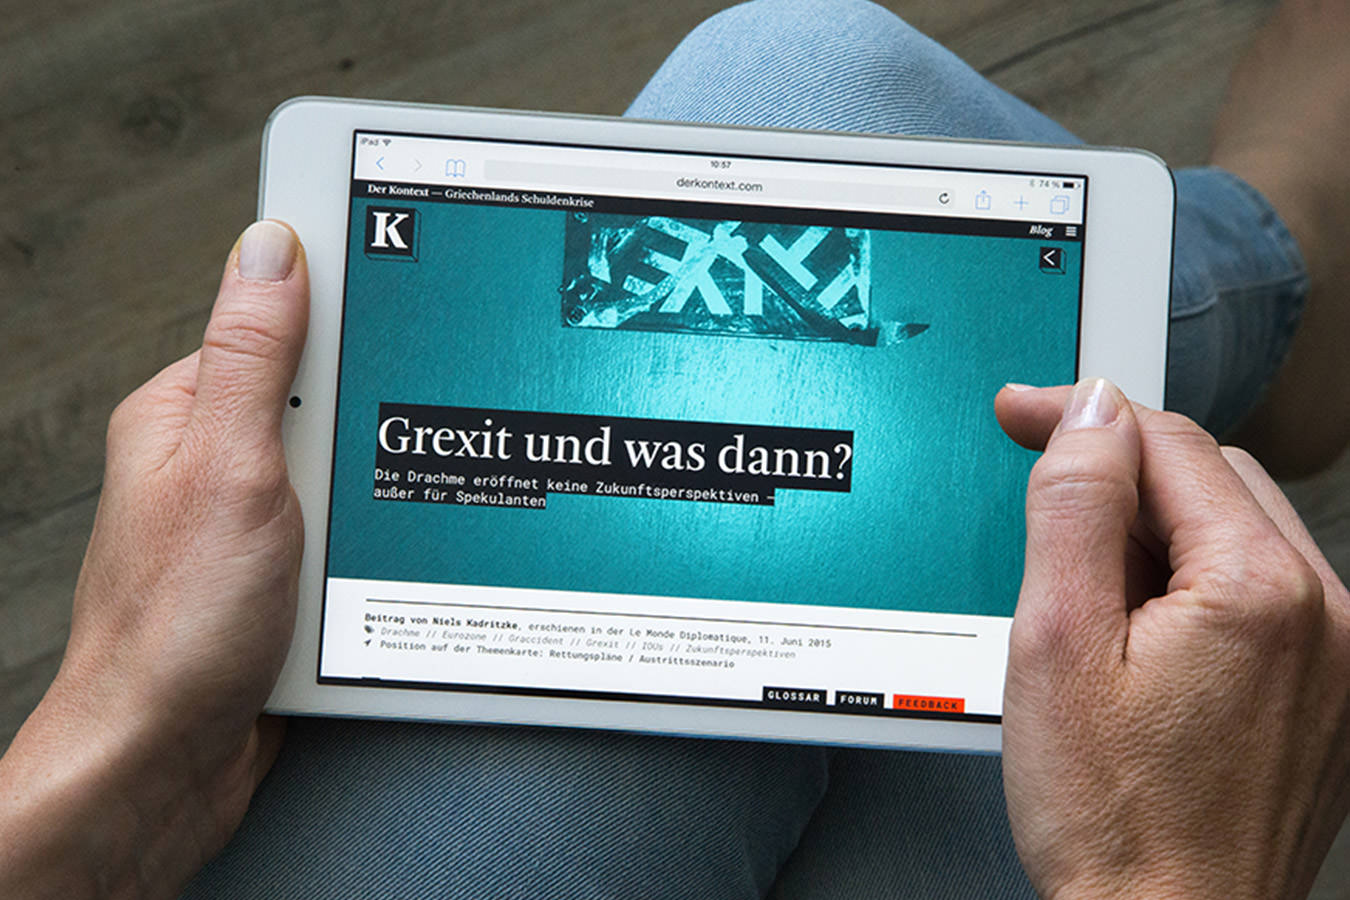 der-kontext-thema